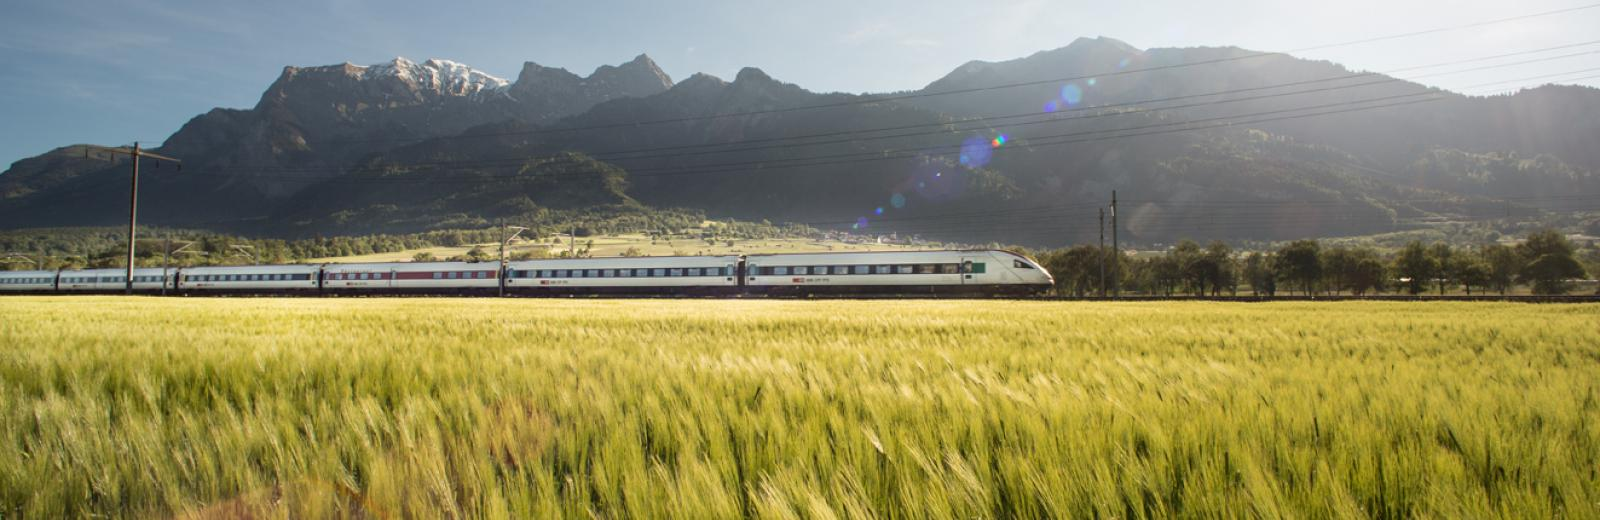 train in Swiss countryside